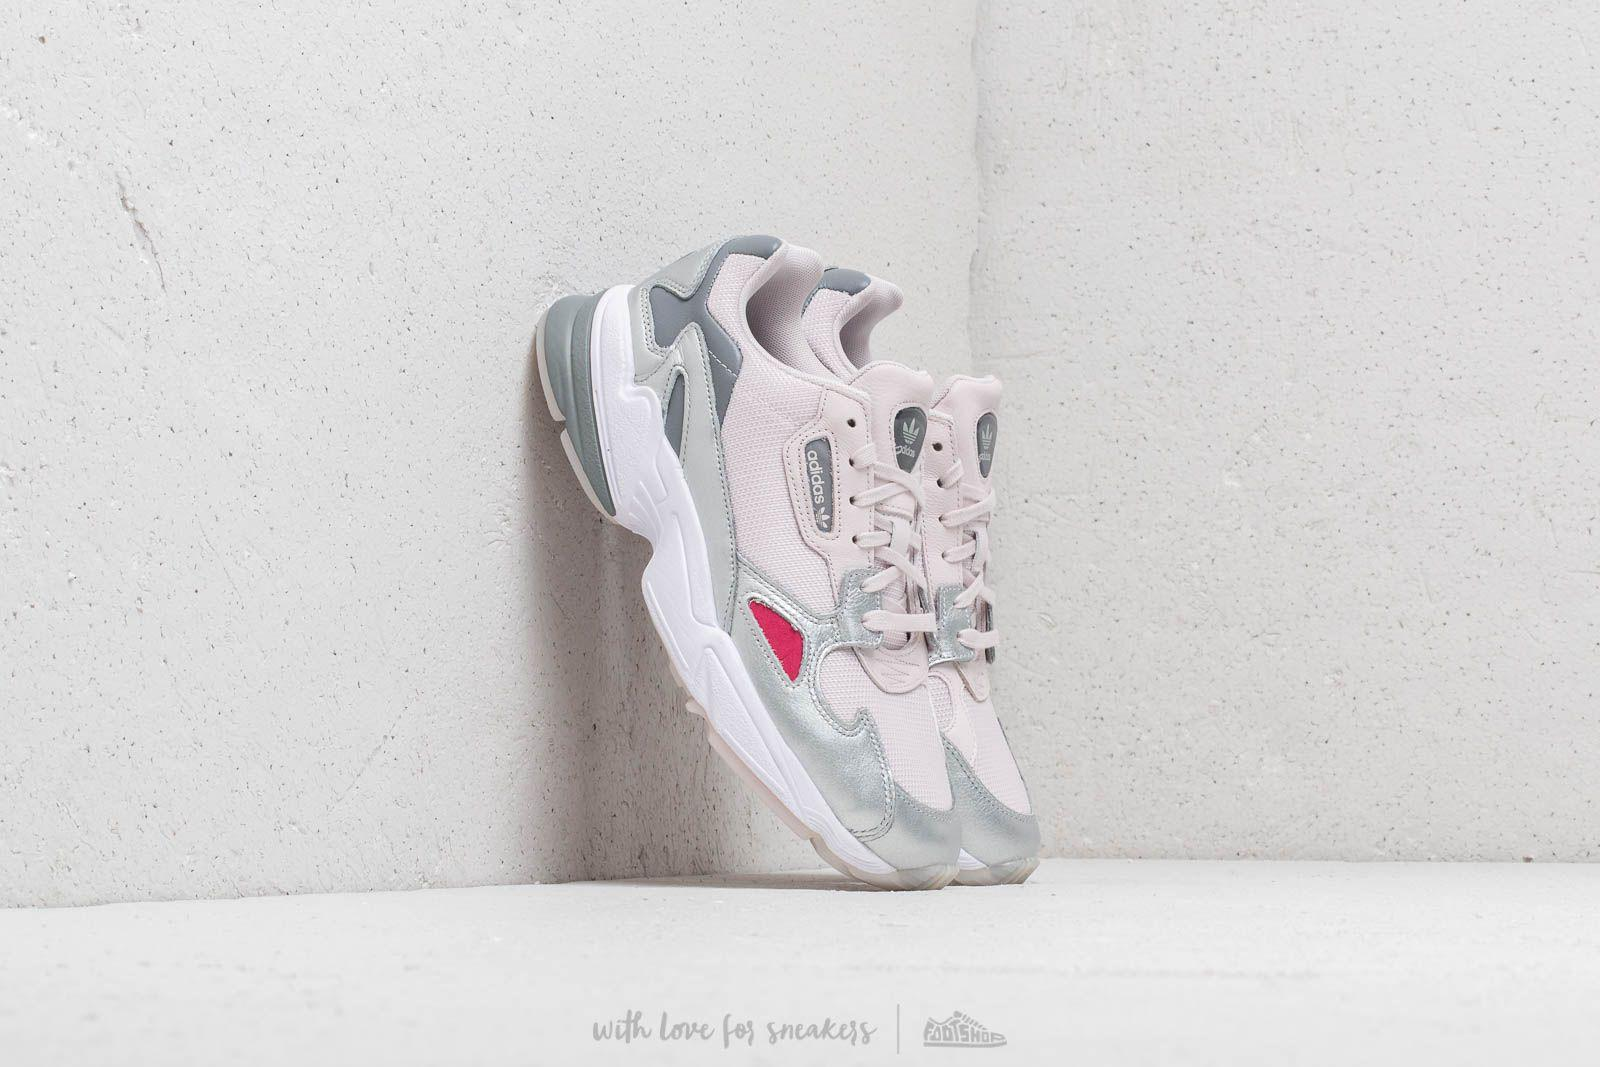 7aefc8d6e6c Lyst - adidas Originals Adidas Falcon W Orchid Tint  Orchid Tint ...